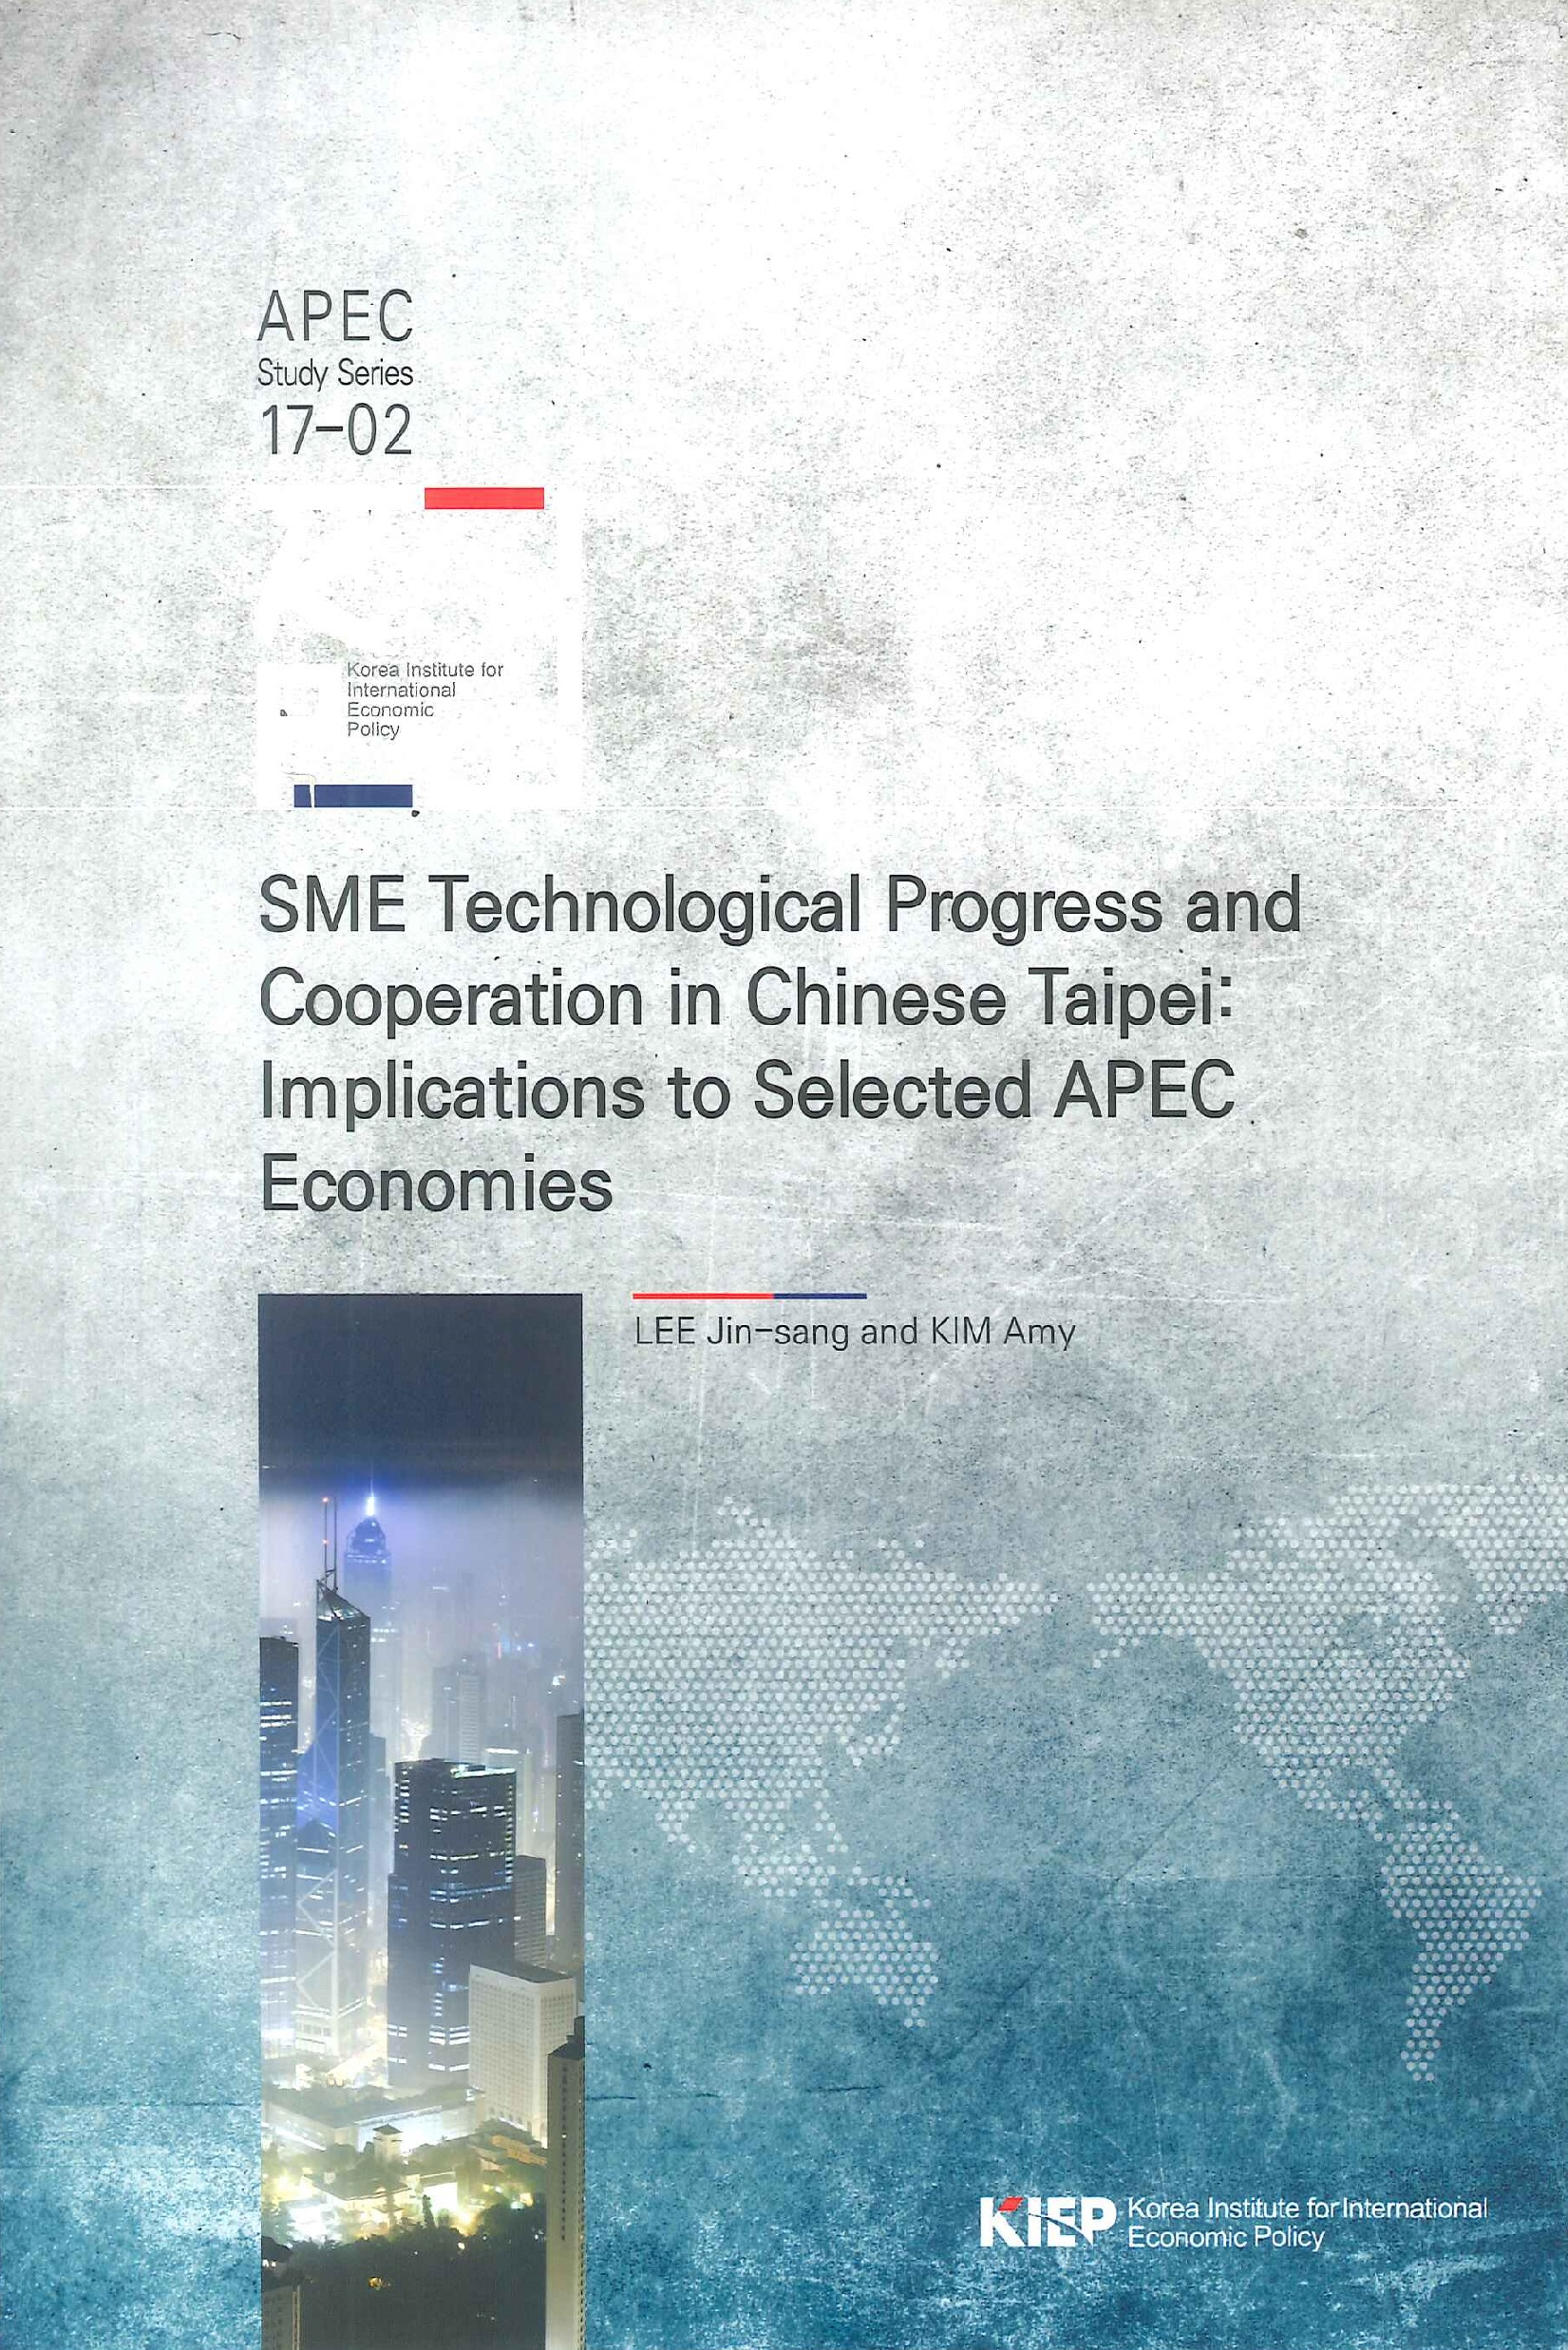 SME technological progress and cooperation in Chinese Taipei:implications to selected APEC economies